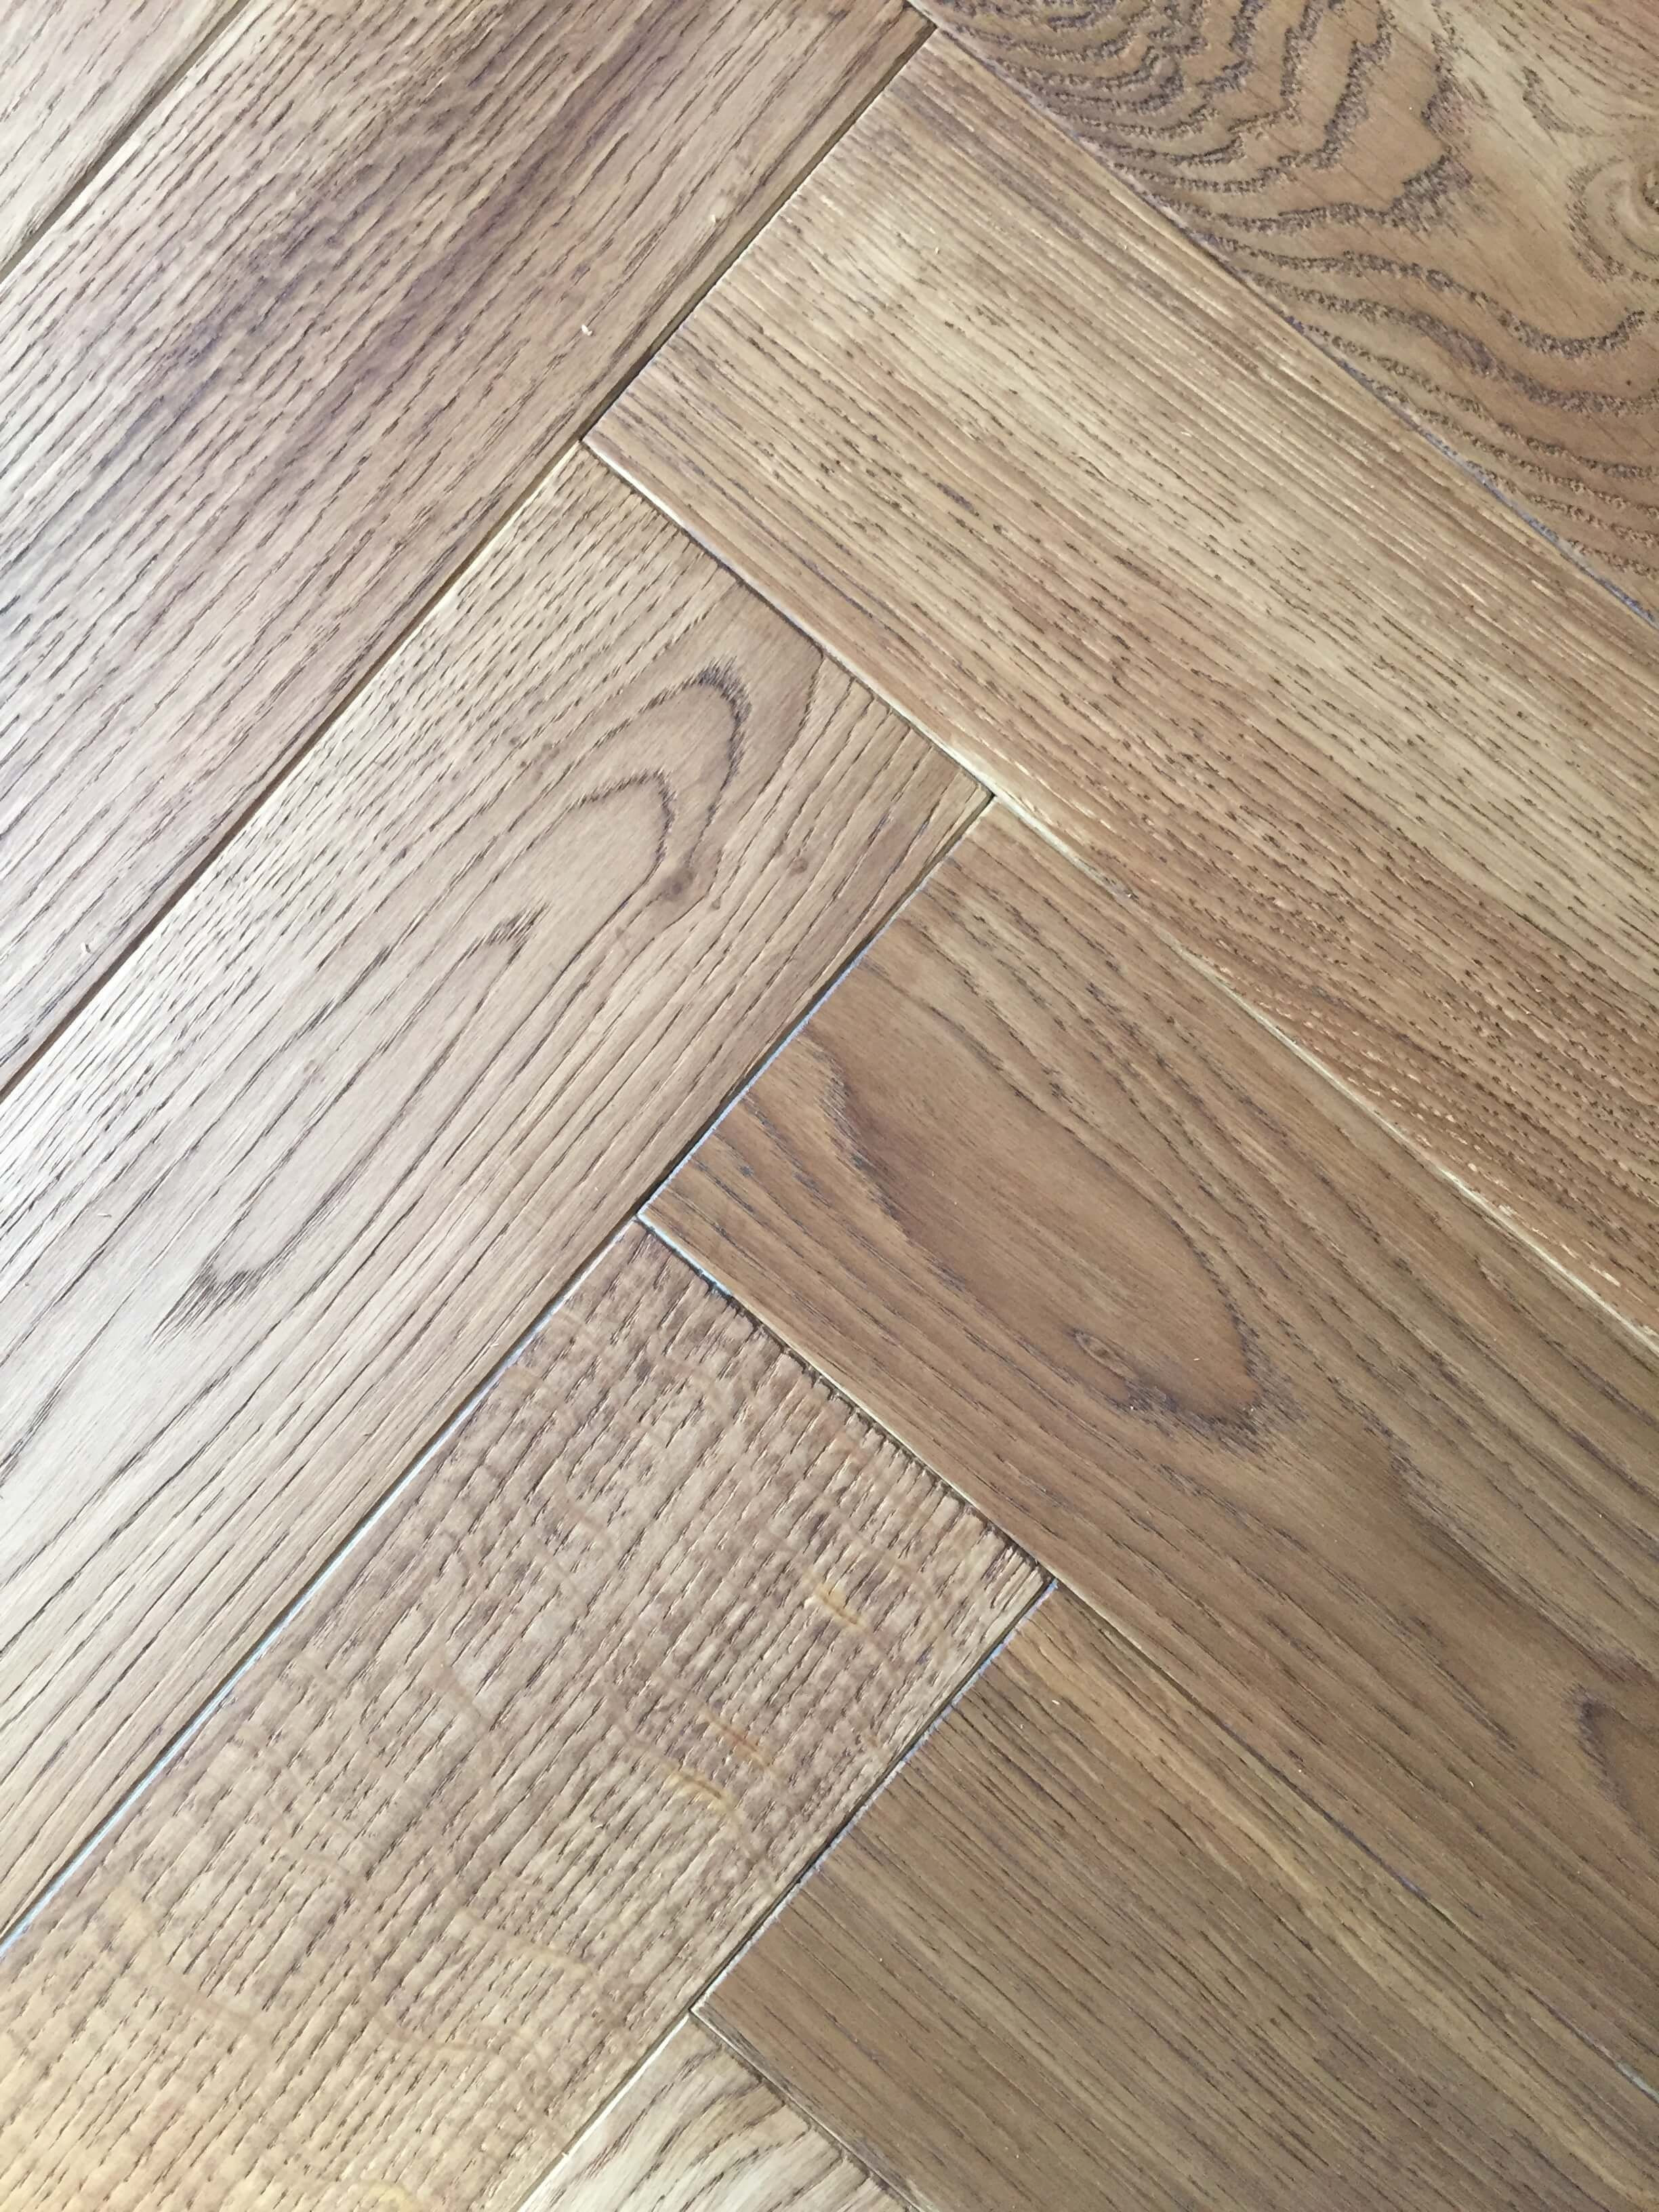 hardwood floor repair nashville tn of 38 elegant brown laminate flooring pics flooring design ideas inside brown laminate flooring elegant where to buy laminate flooring collection of 38 elegant brown laminate flooring